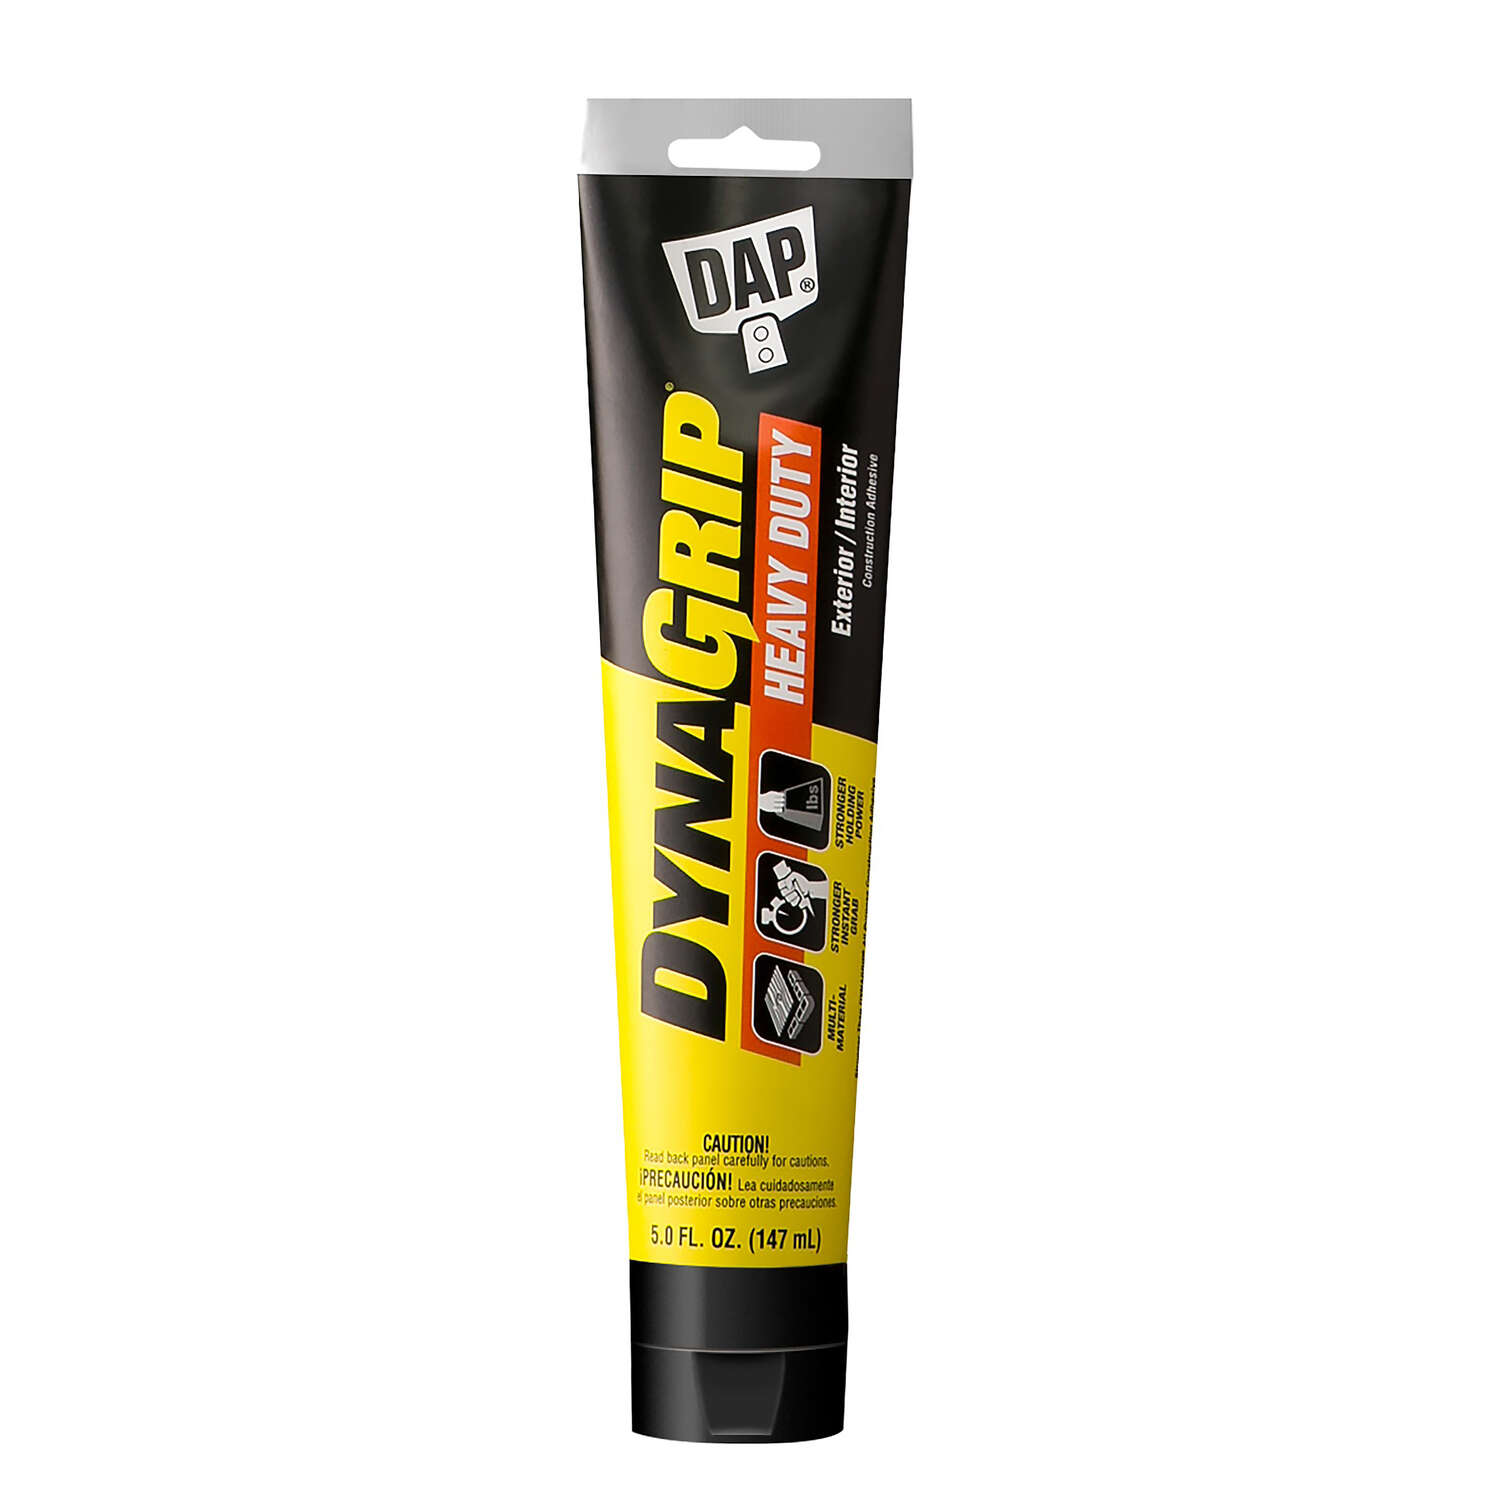 DAP  DynaGrip  Construction Adhesive  5 oz.